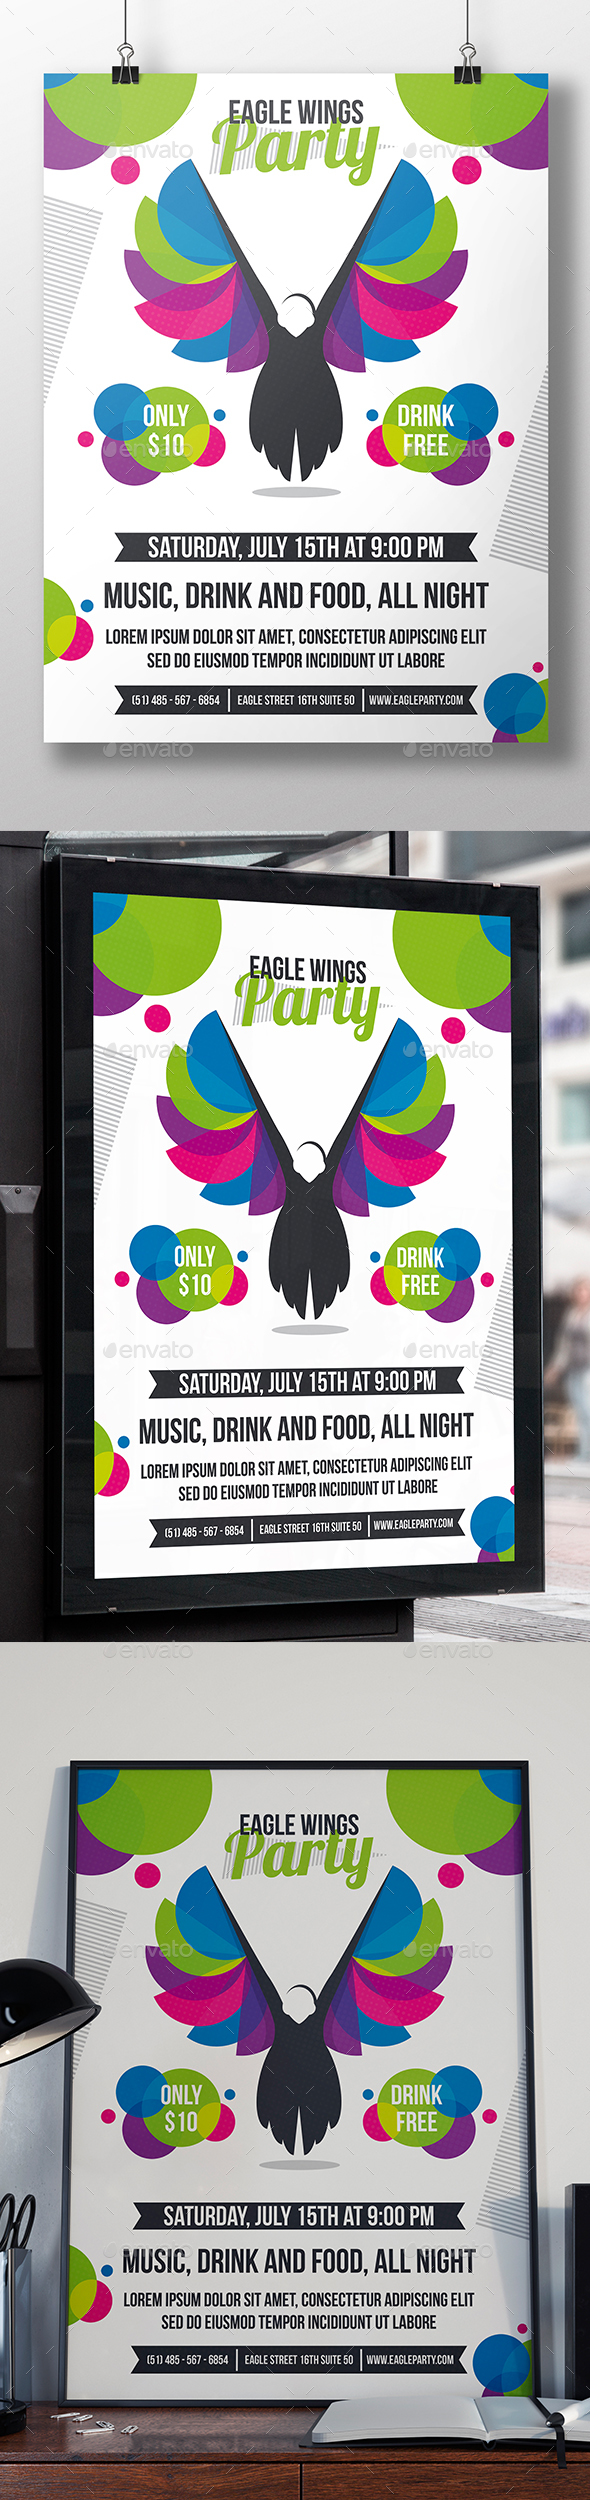 Eagle Wings Flyer Template - Clubs & Parties Events